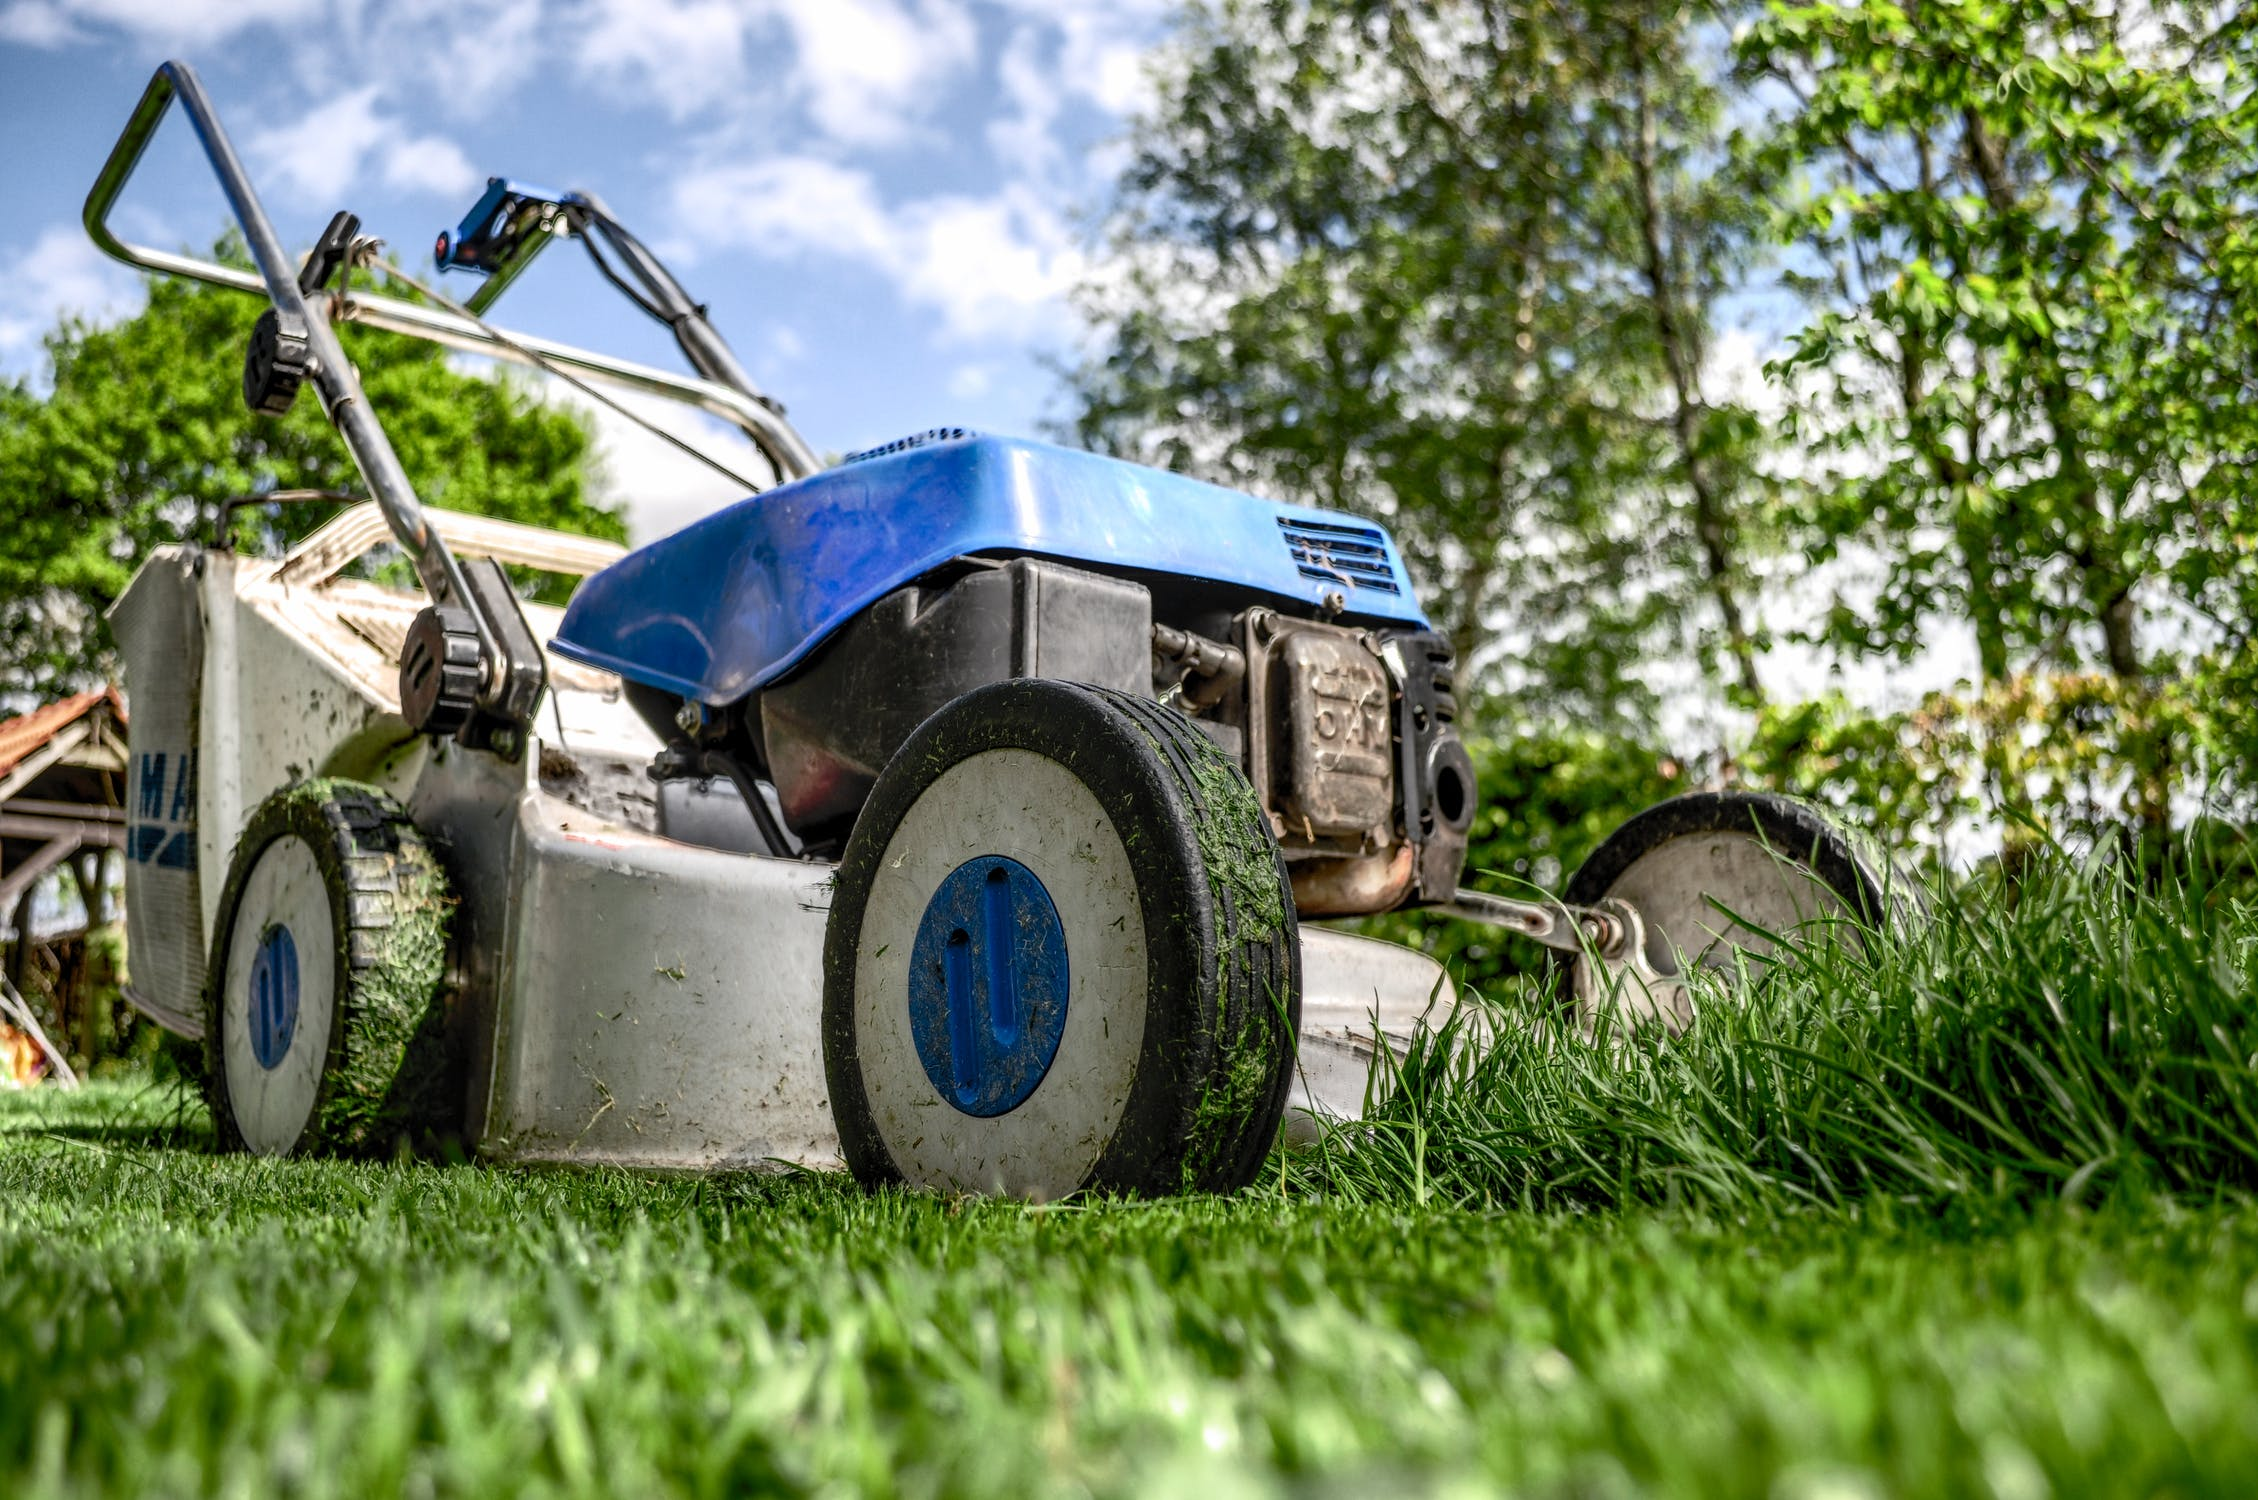 How to Take Care of Your String Trimmer During and After Regular Use